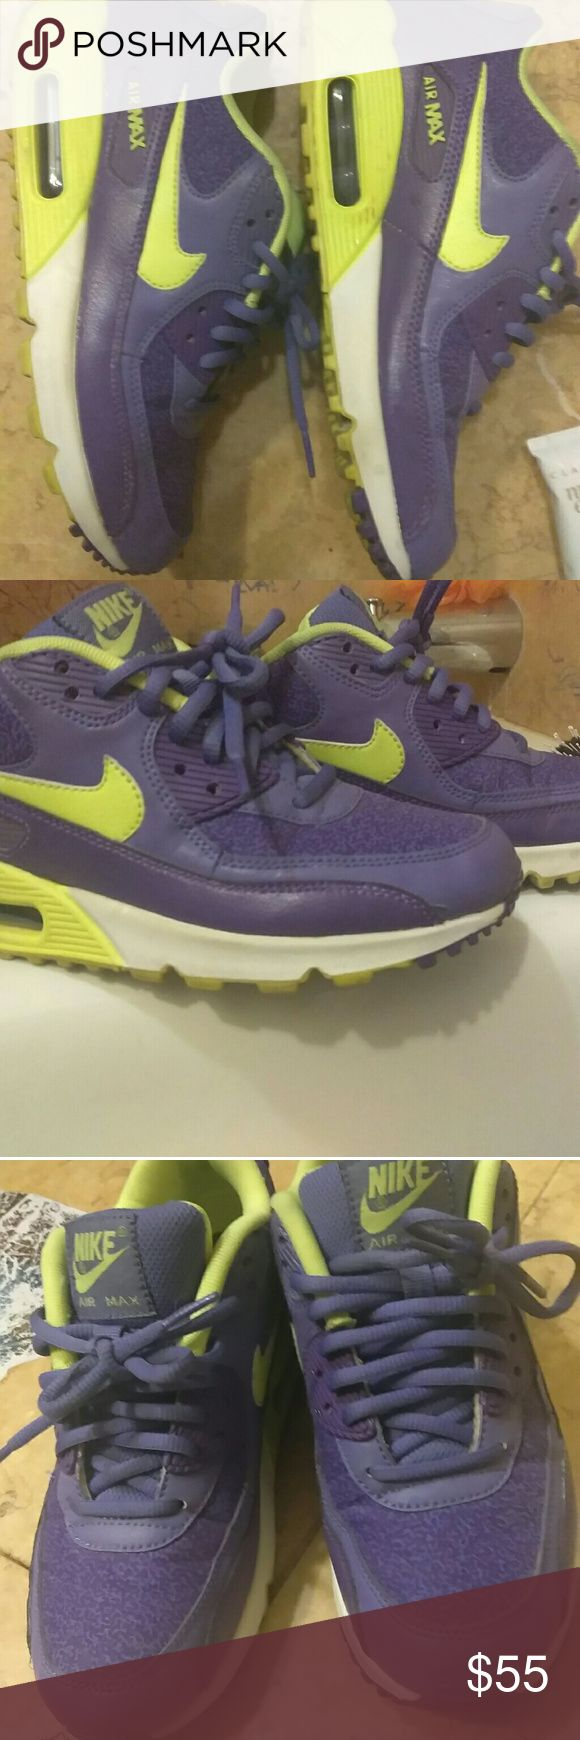 Rare purple and green Nike Air Max tennis shoes These Nike shoes have never made exercising look so good 😍😍. They are  purple with green trim which make them very rare and near impossible to find anymore! Trust me I have looked for the same shoe but in a bigger size and I haven't had any luck  😔 . As you can see from the pics , they are in great condition and show no real signs of wear (only worn once). Nike Shoes Athletic Shoes